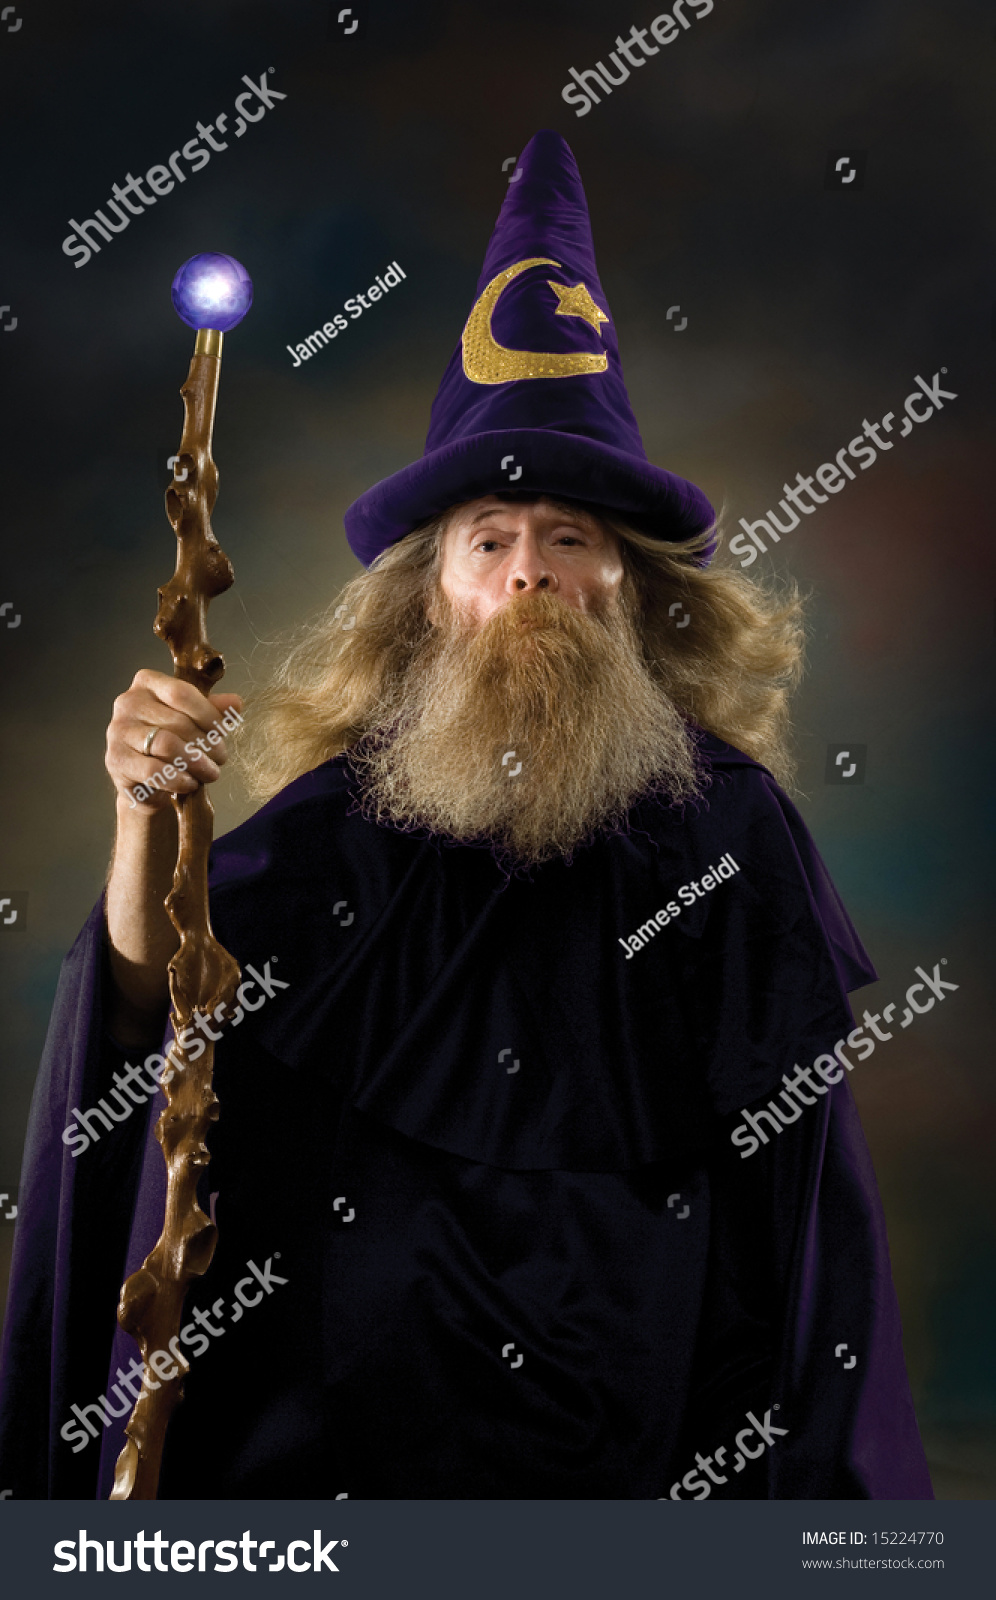 stock-photo-wizard-with-posing-for-a-portrait-15224770